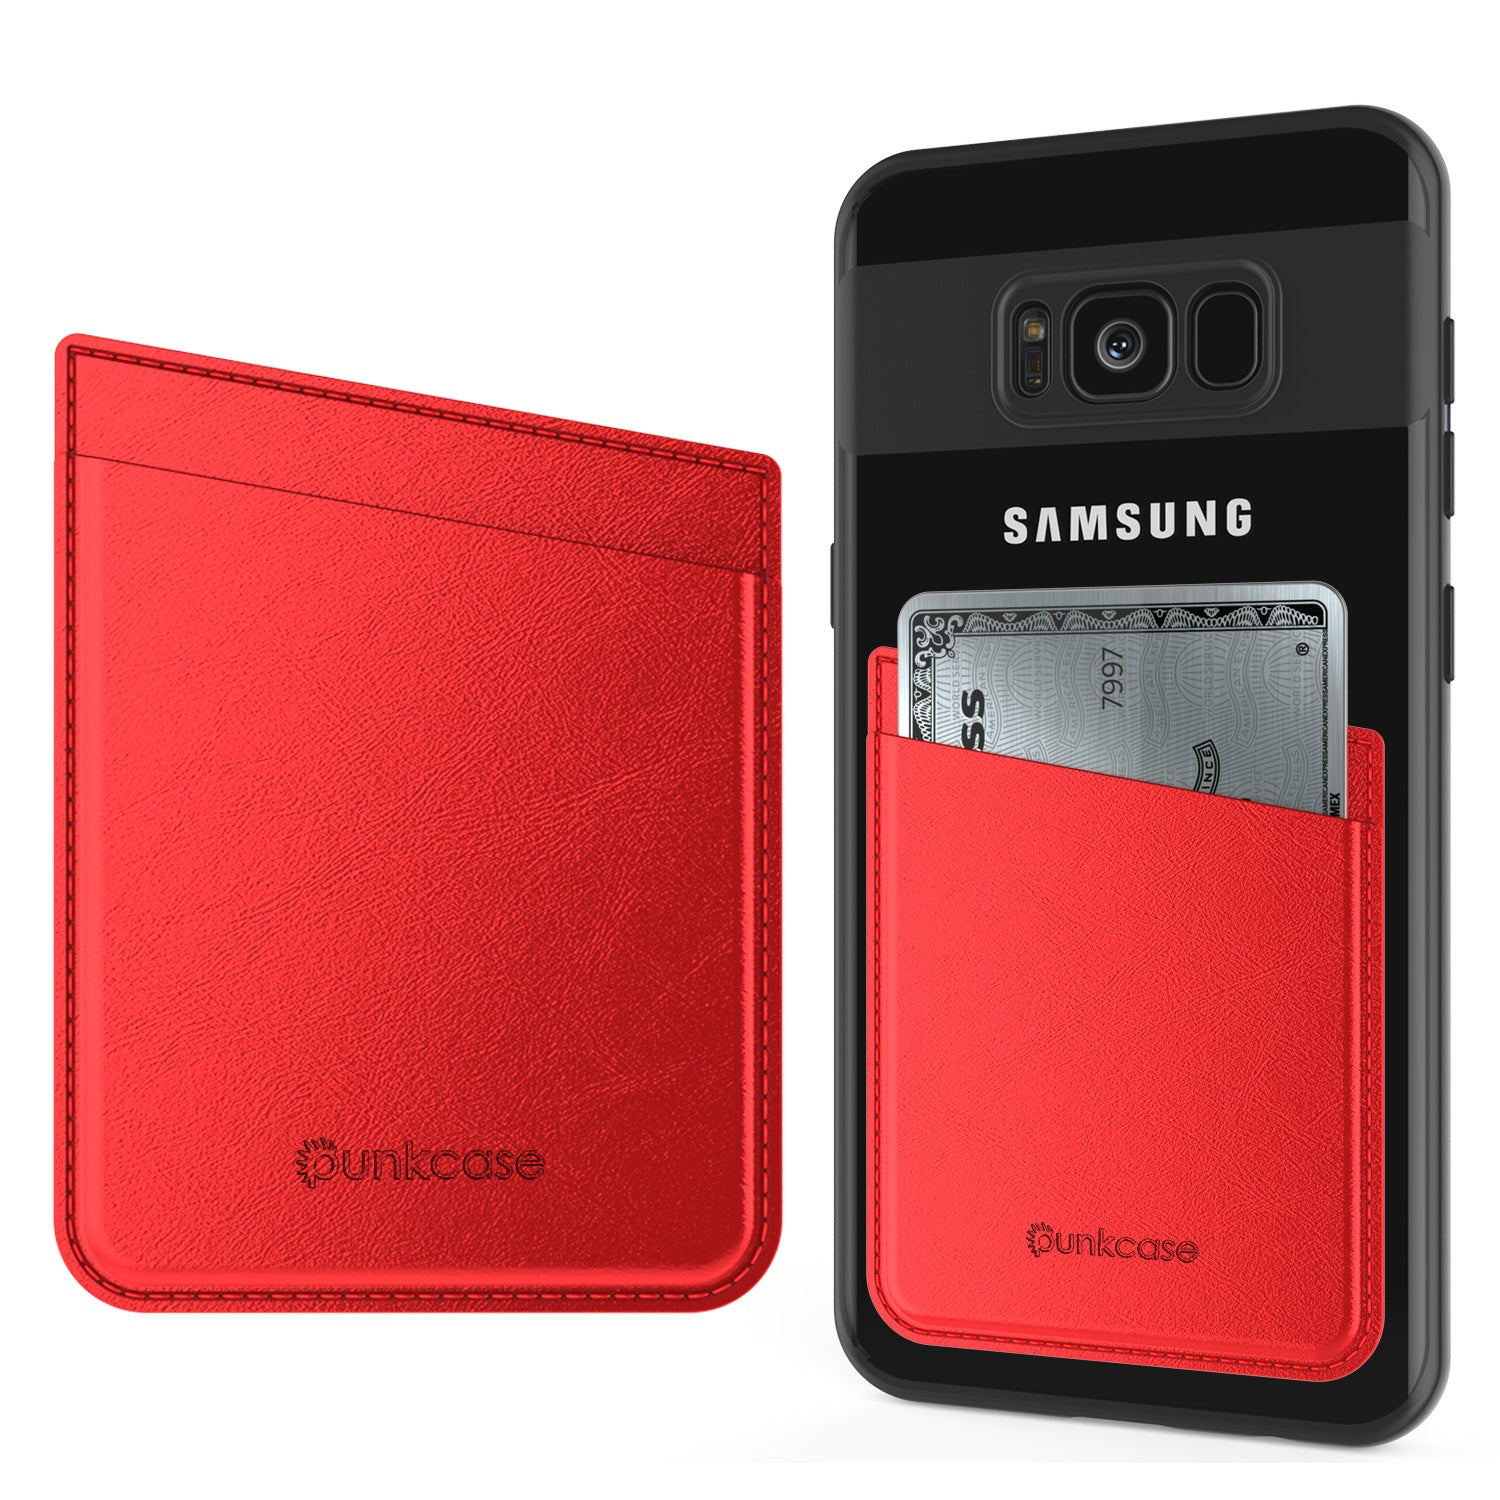 watch c04f4 7eb72 PunkCase CardStud Deluxe Stick On Wallet | Adhesive Card Holder Attachment  for Back of iPhone, Android & More | Leather Pouch | [Red]